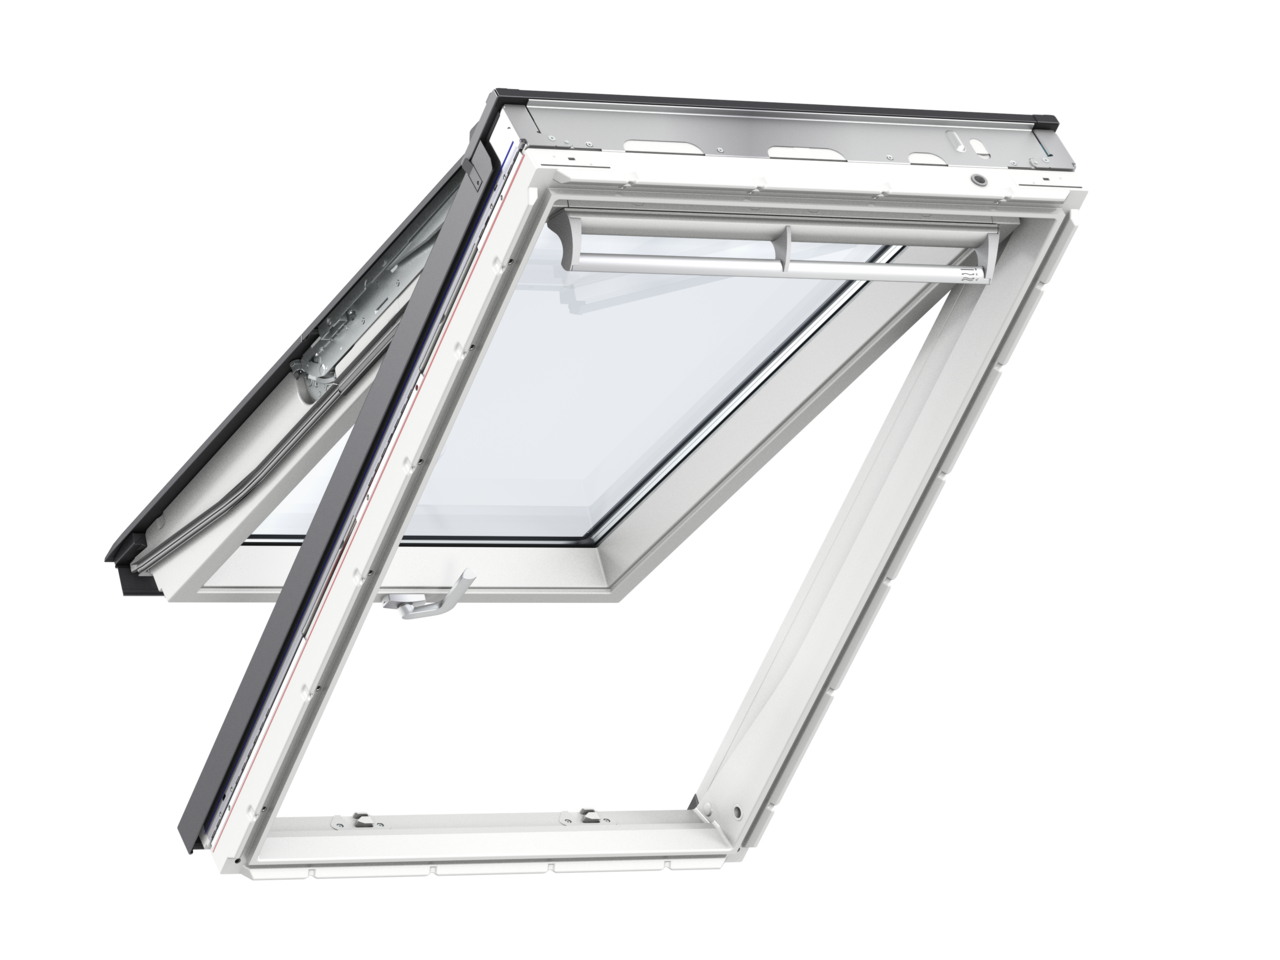 Velux GPU CK06 550 x 1180mm Top Hung 60Pane Roof Window - White Polyurethane